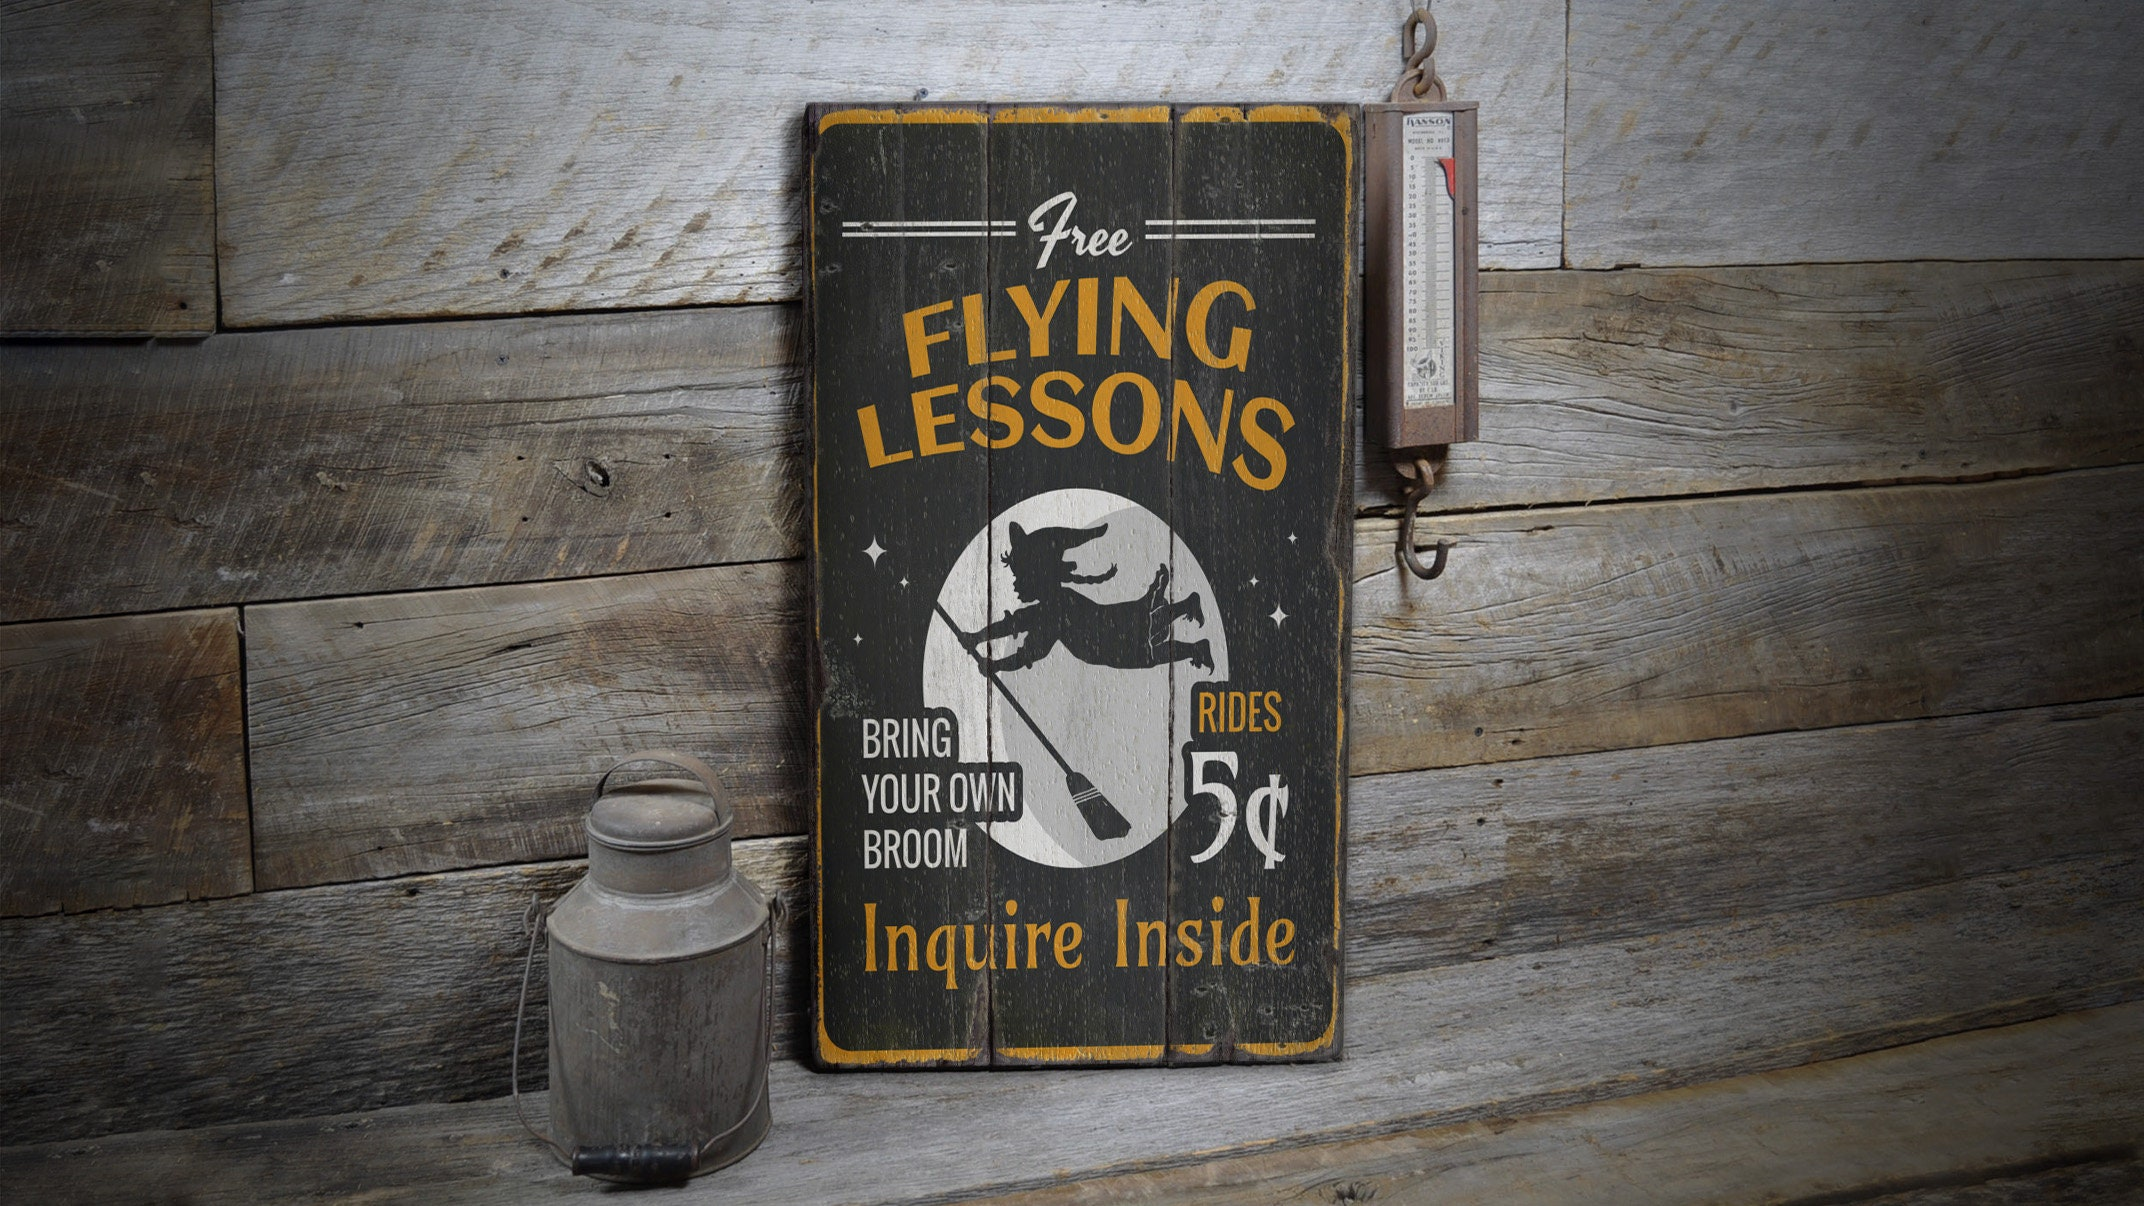 Wondrous Broom Lesson Sign Witches Sign October House Sign Wood Scary Decor Halloween Decor Wood Sign Rustic Hand Made Vintage Wooden Decor Download Free Architecture Designs Philgrimeyleaguecom